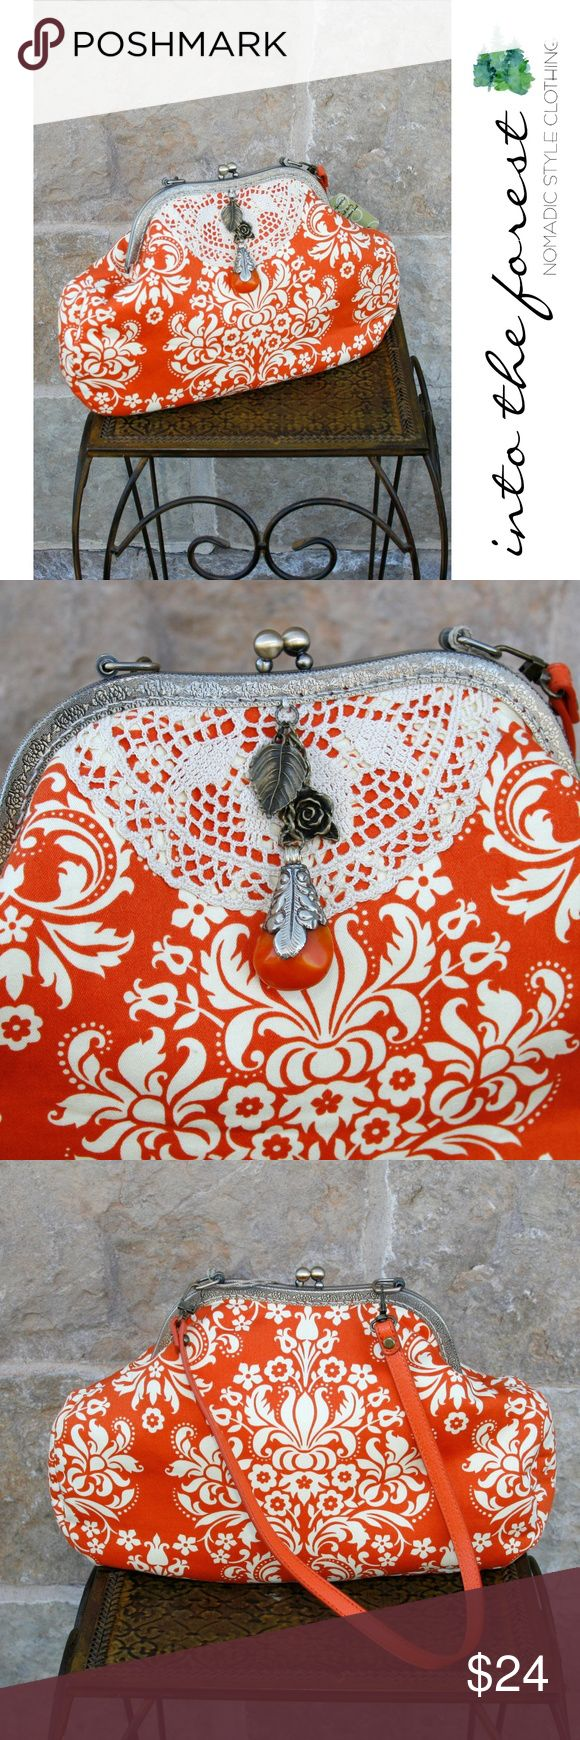 """NWT Orange Blossom Bag with Stone Charm Boho beauty! New With Tags. Retail $65.00. Vintage crochet doily as accent. Resin bead and metal charms on tassel. Vinyl strap. One zippered pocket inside. ● Width 14"""", Height 9"""", Depth 2"""", Strap Height 12"""".  ● Cotton/Polyester blend outer.  ● Smoke-free home and fast shipper! Bags Shoulder Bags"""